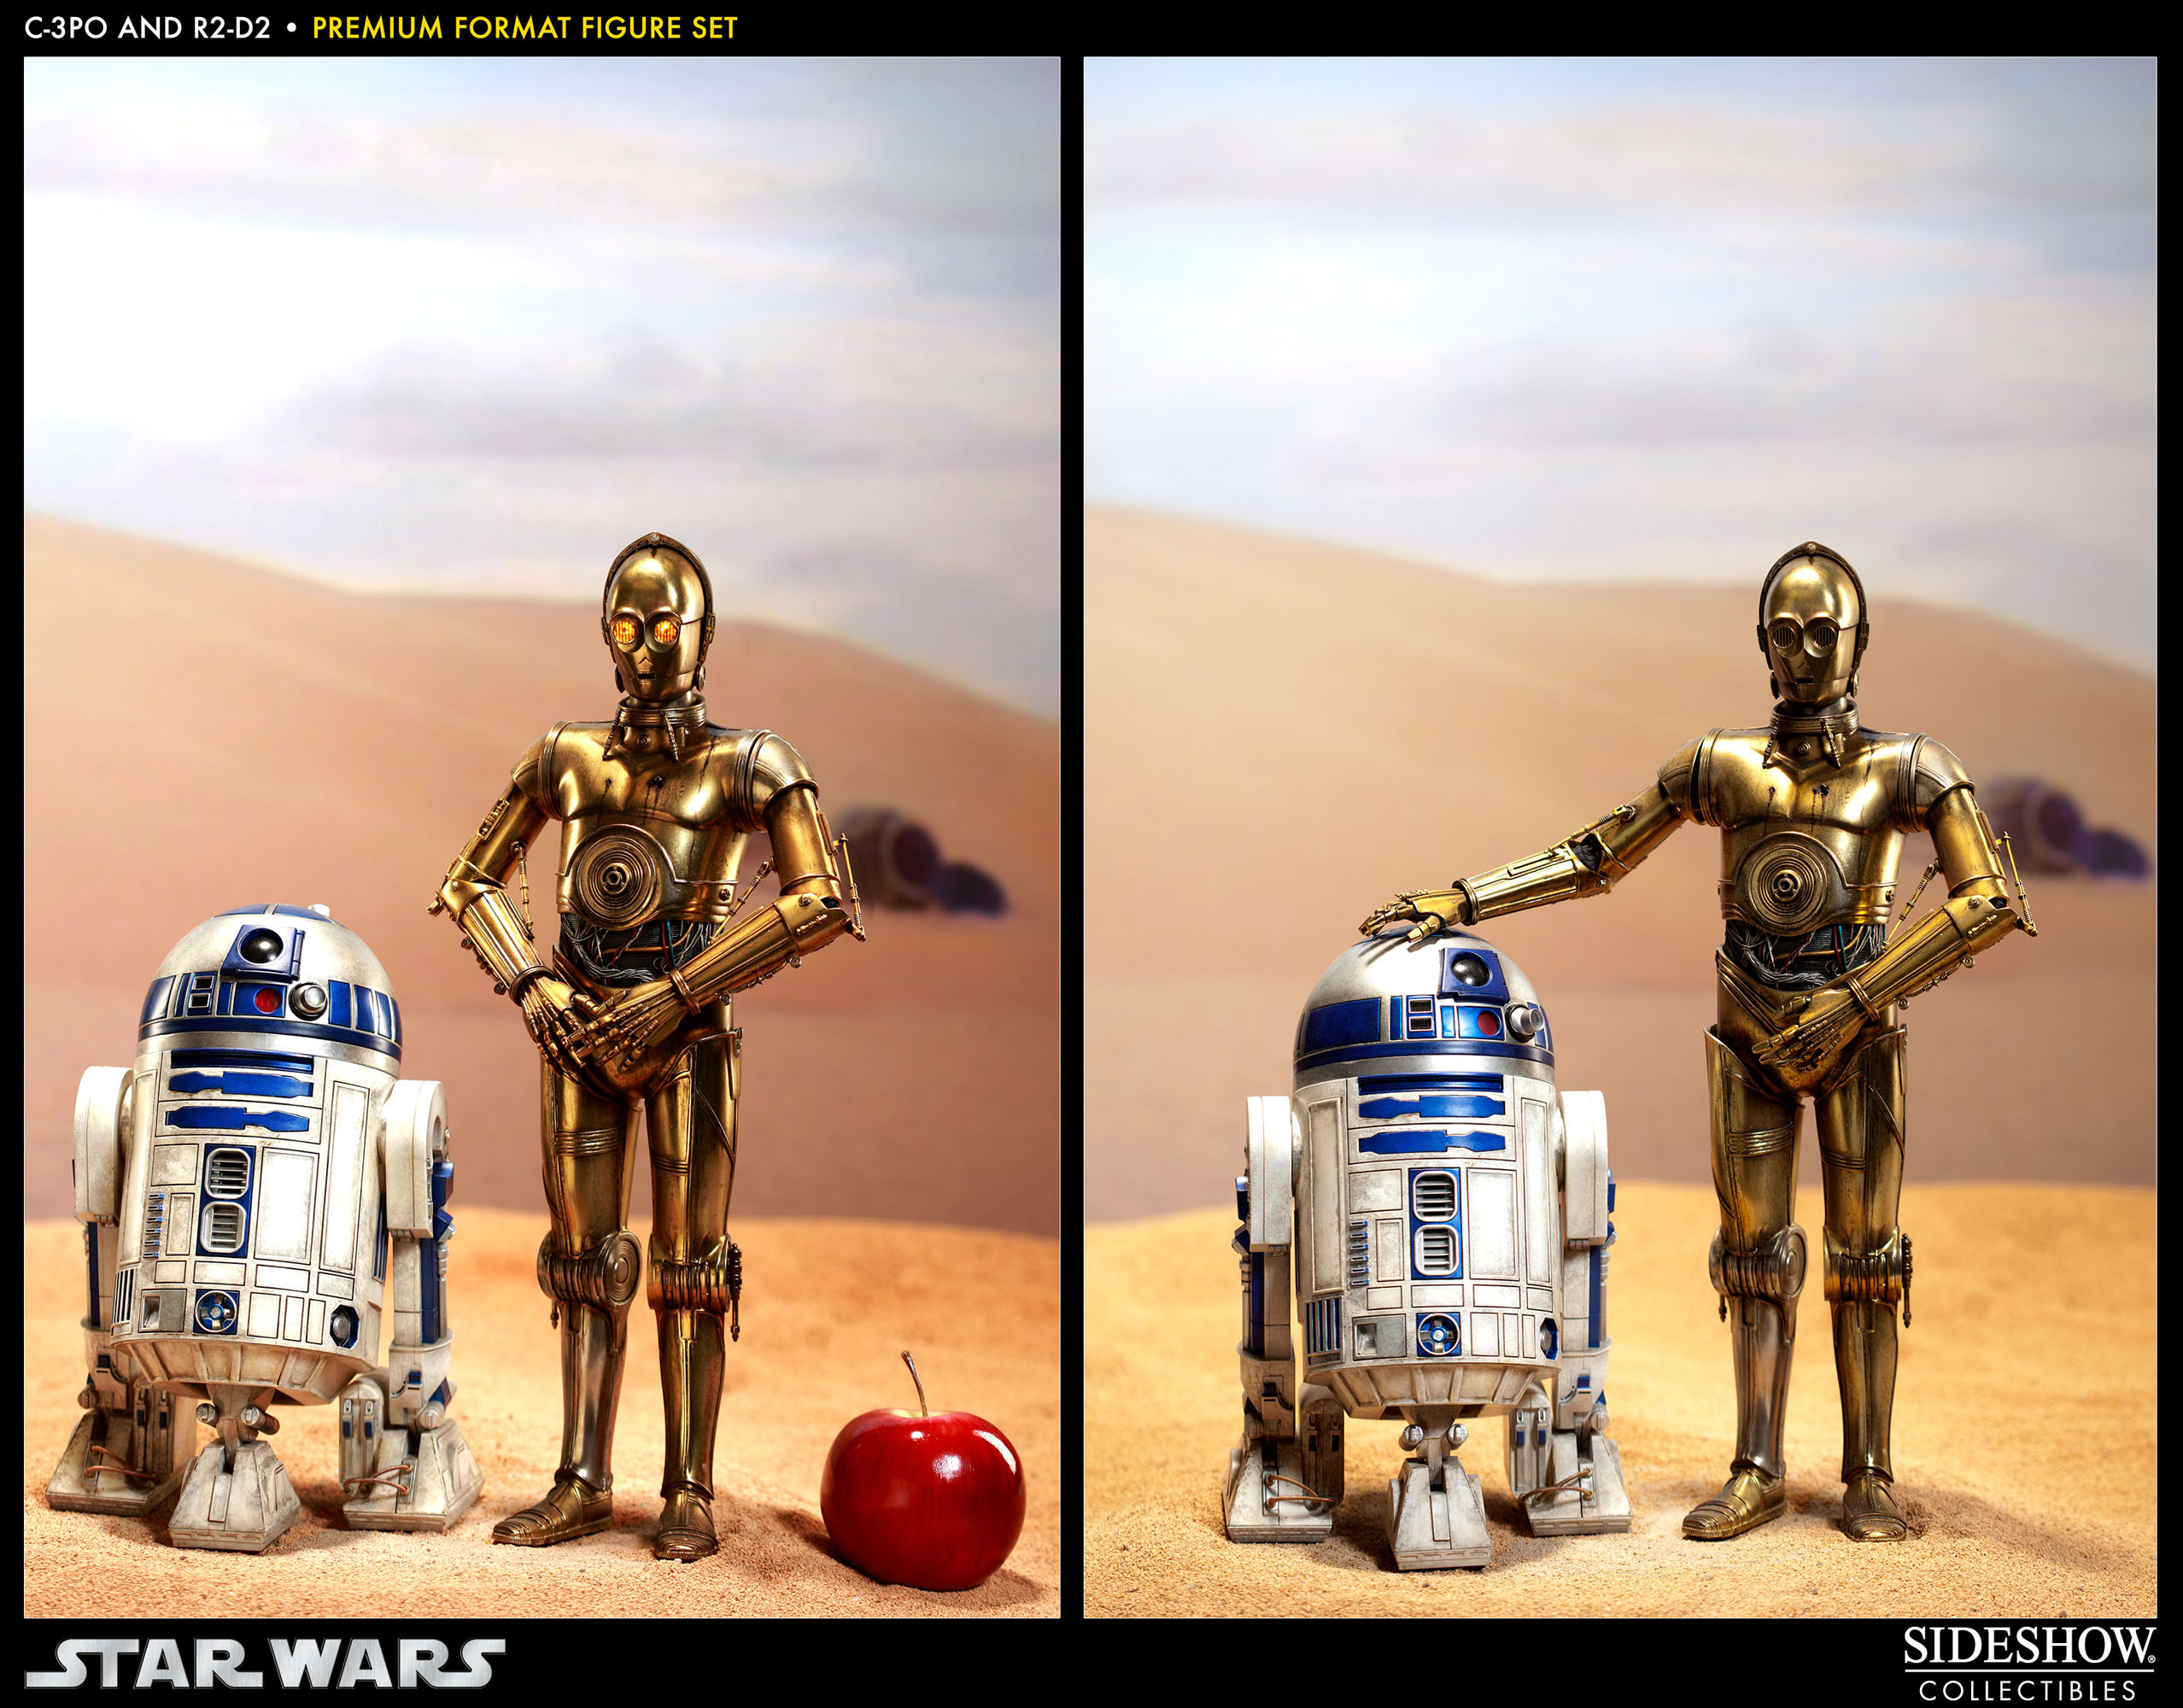 R2d2 And C3po C-3PO and R2-D2...